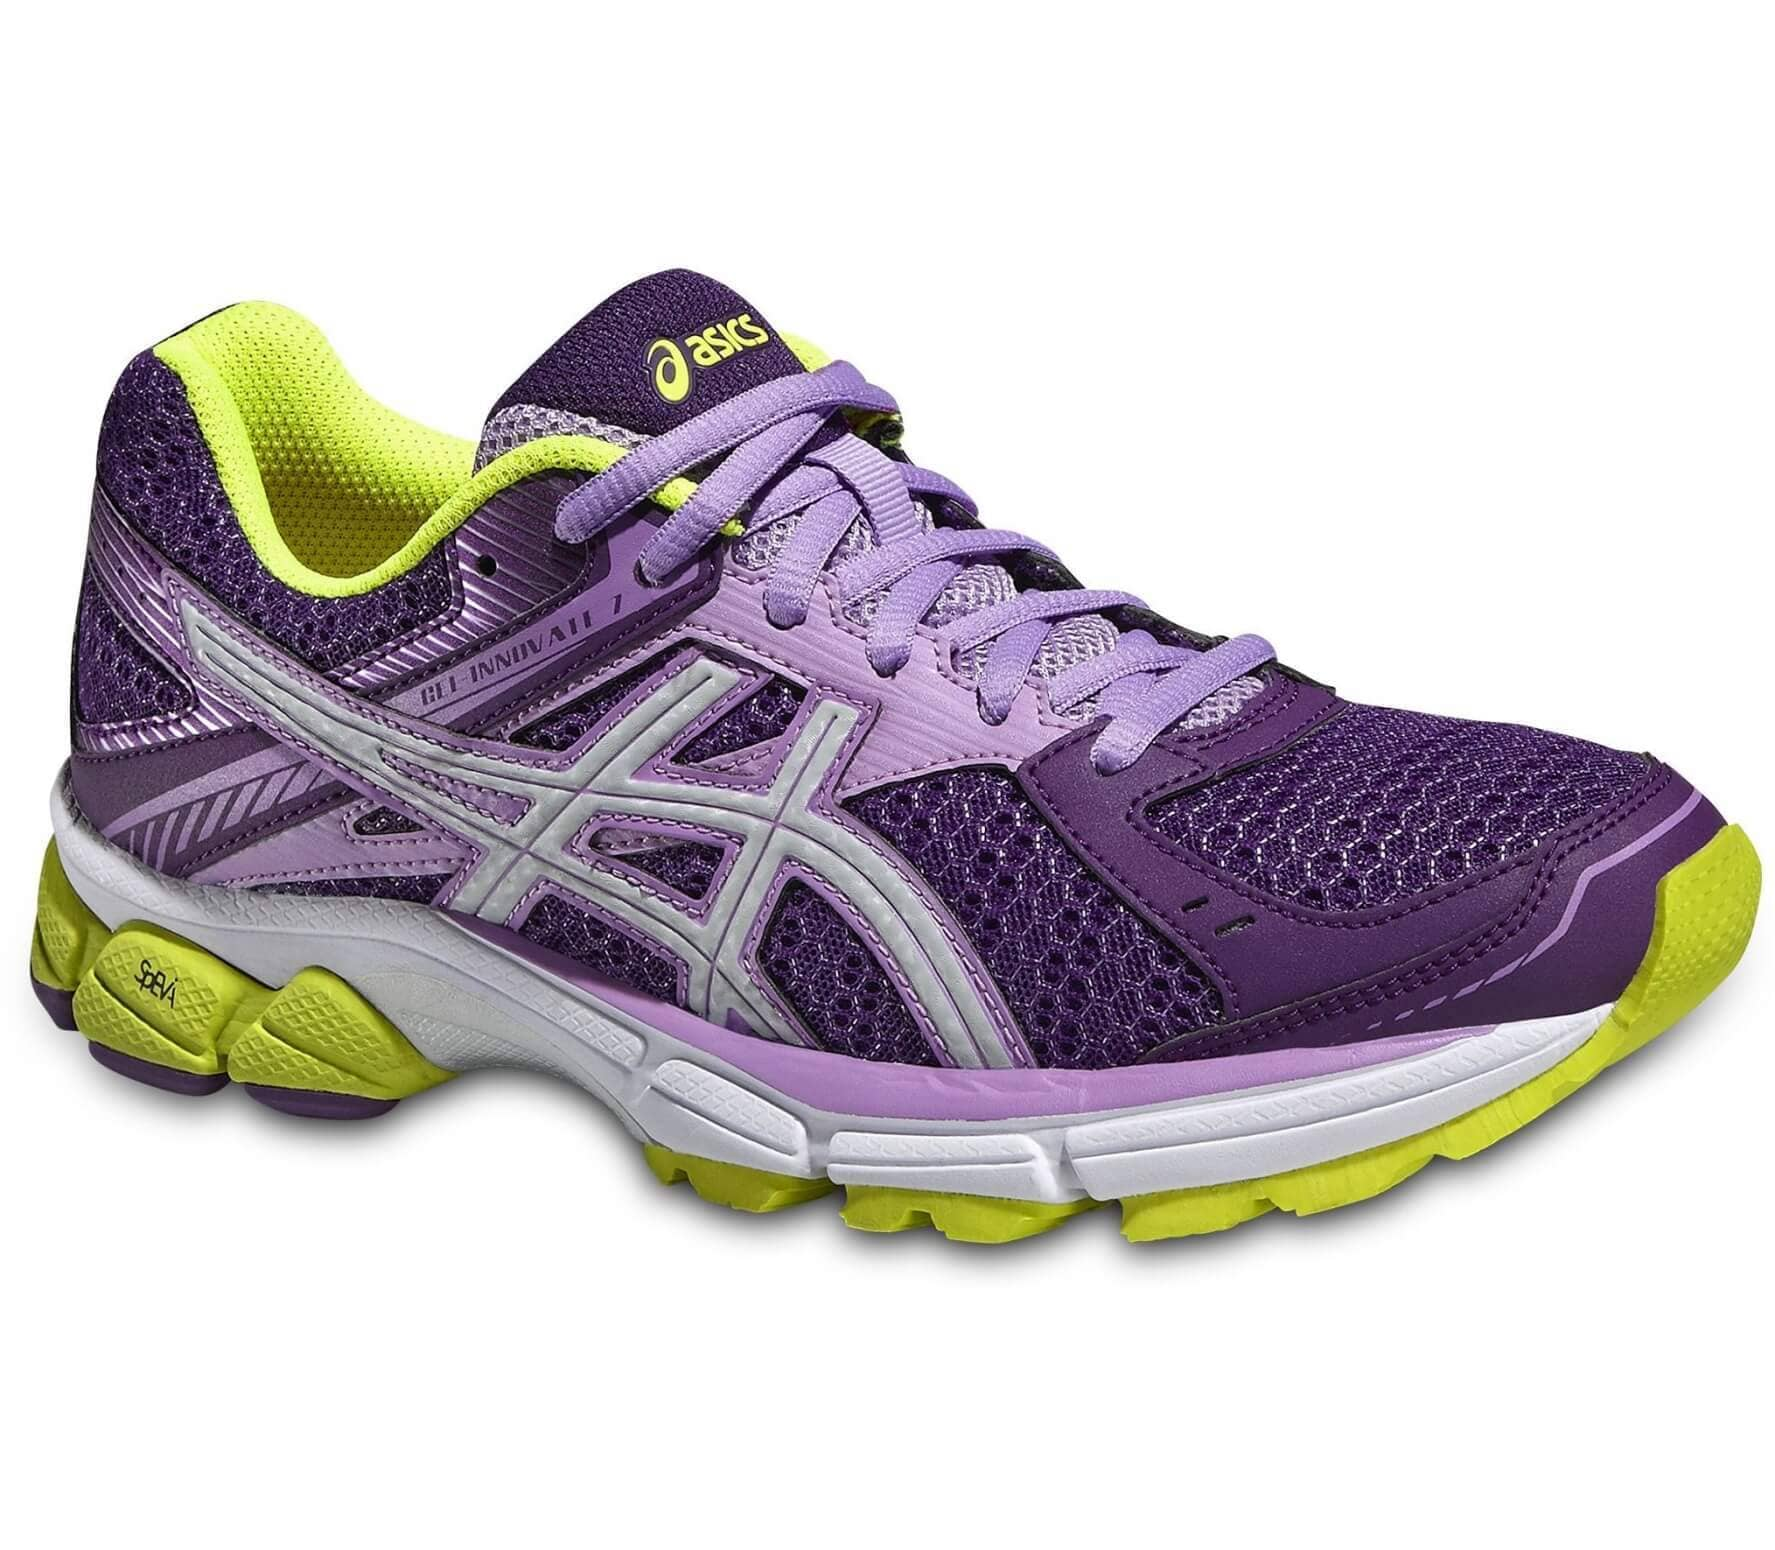 Gel Innovate Women's Shoes Running Asics 7 Femmes PwO0k8n